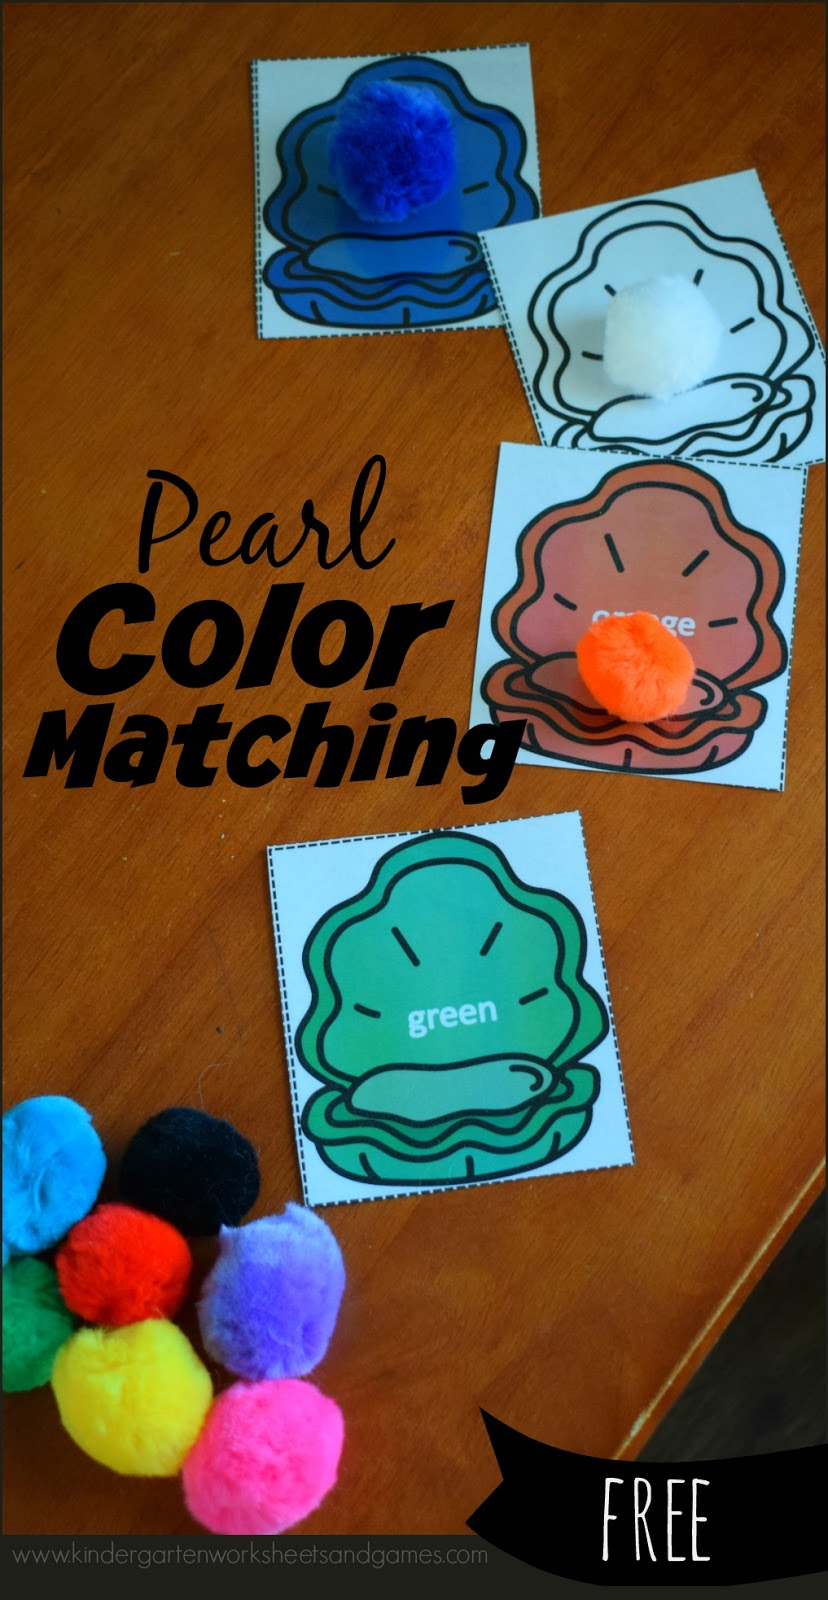 Kindergarten Worksheets and Games: FREE Pearl Color Matching Activity